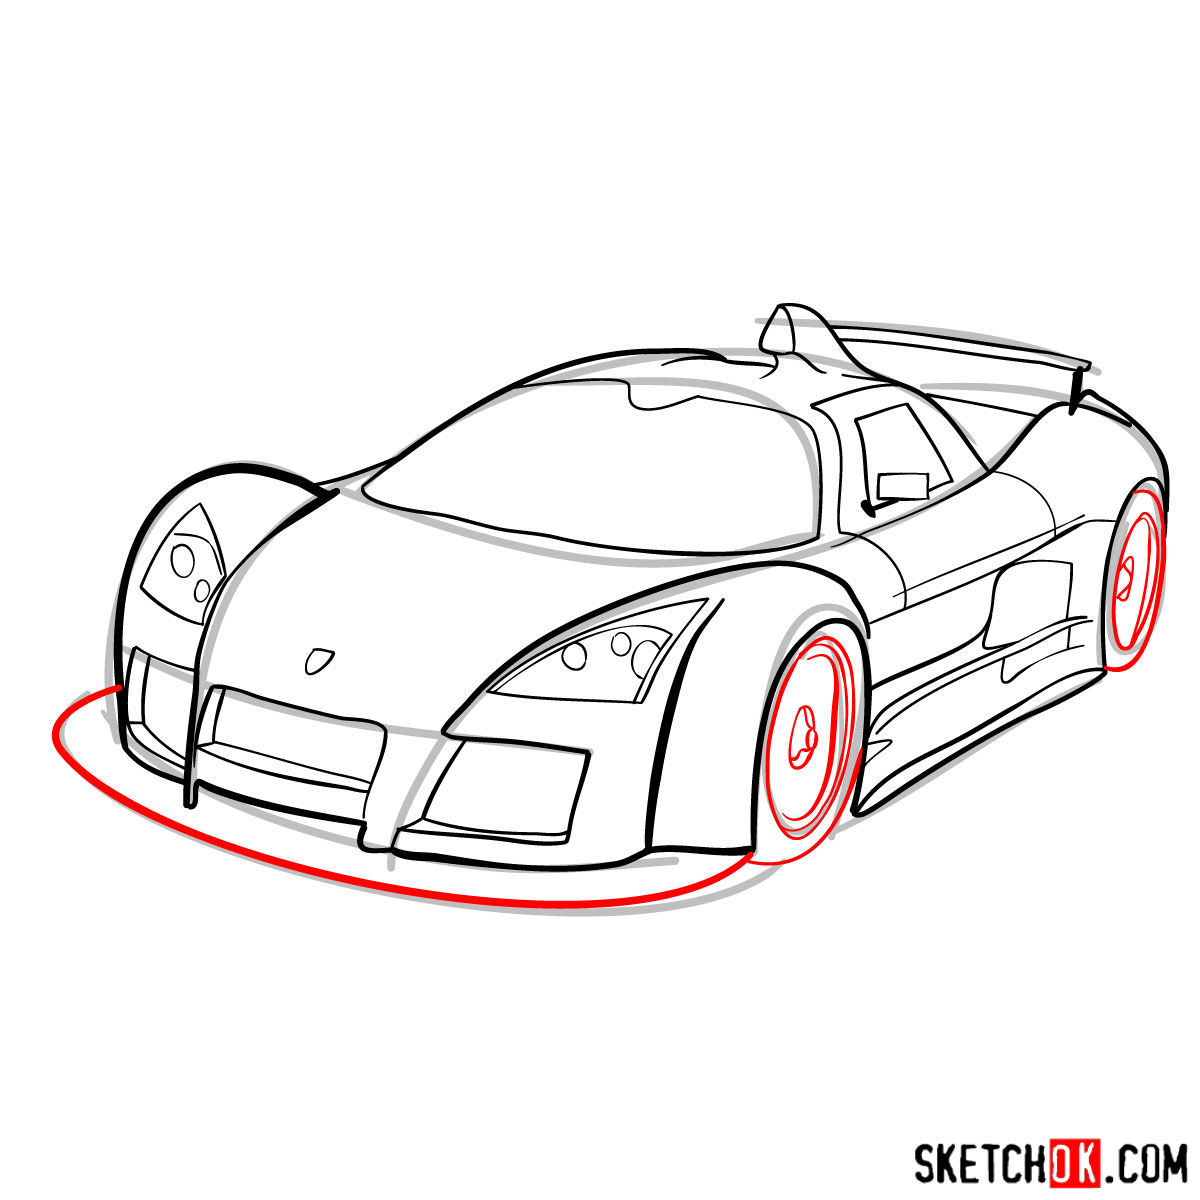 How to draw Gumpert Apolo Sport 2005 - step 09